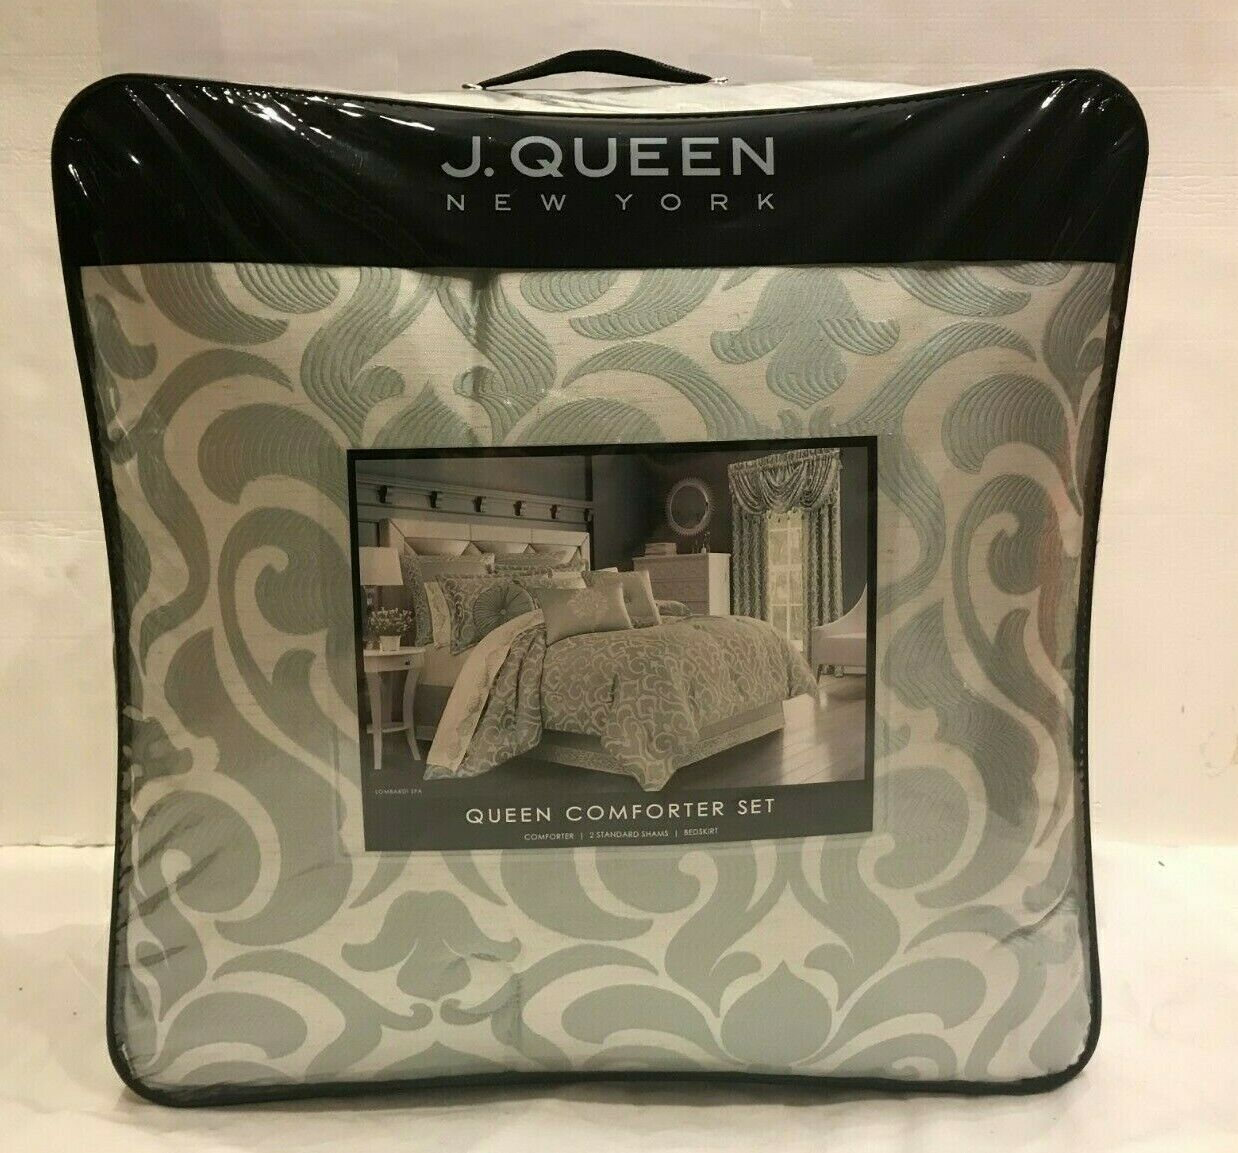 J. QUEEN NEW YORK LOMBARDI SPA QUEEN COMFORTER SET. BRAND NEW    299.99 TAG